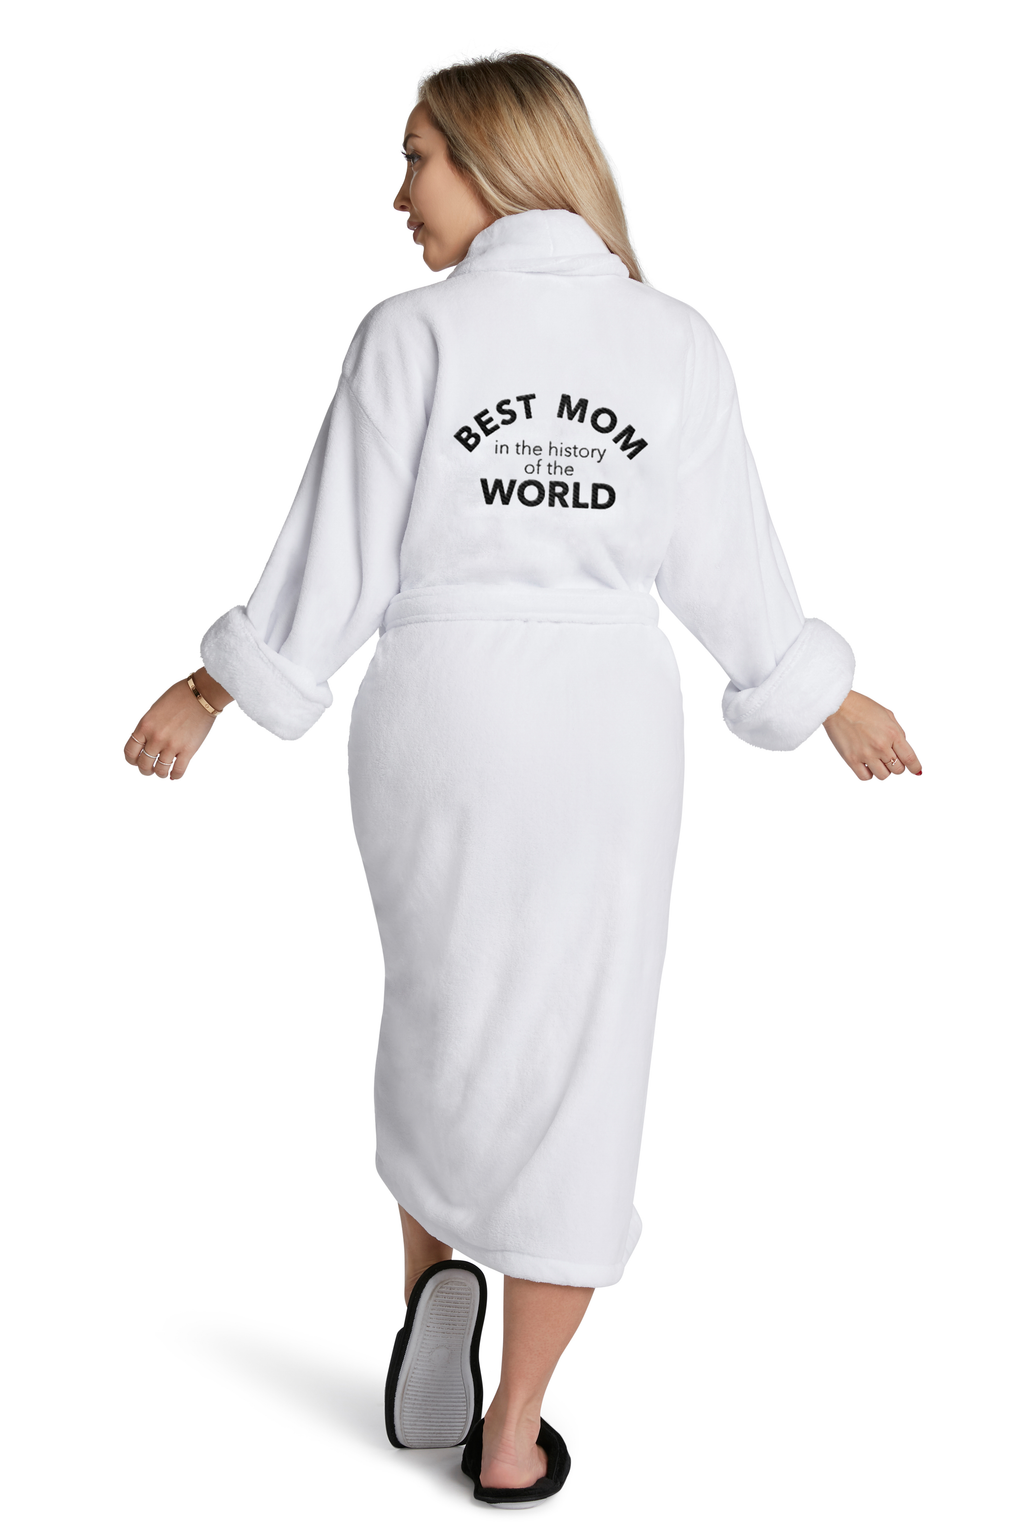 LUXE PLUSH ROBE - Best Mom In The World